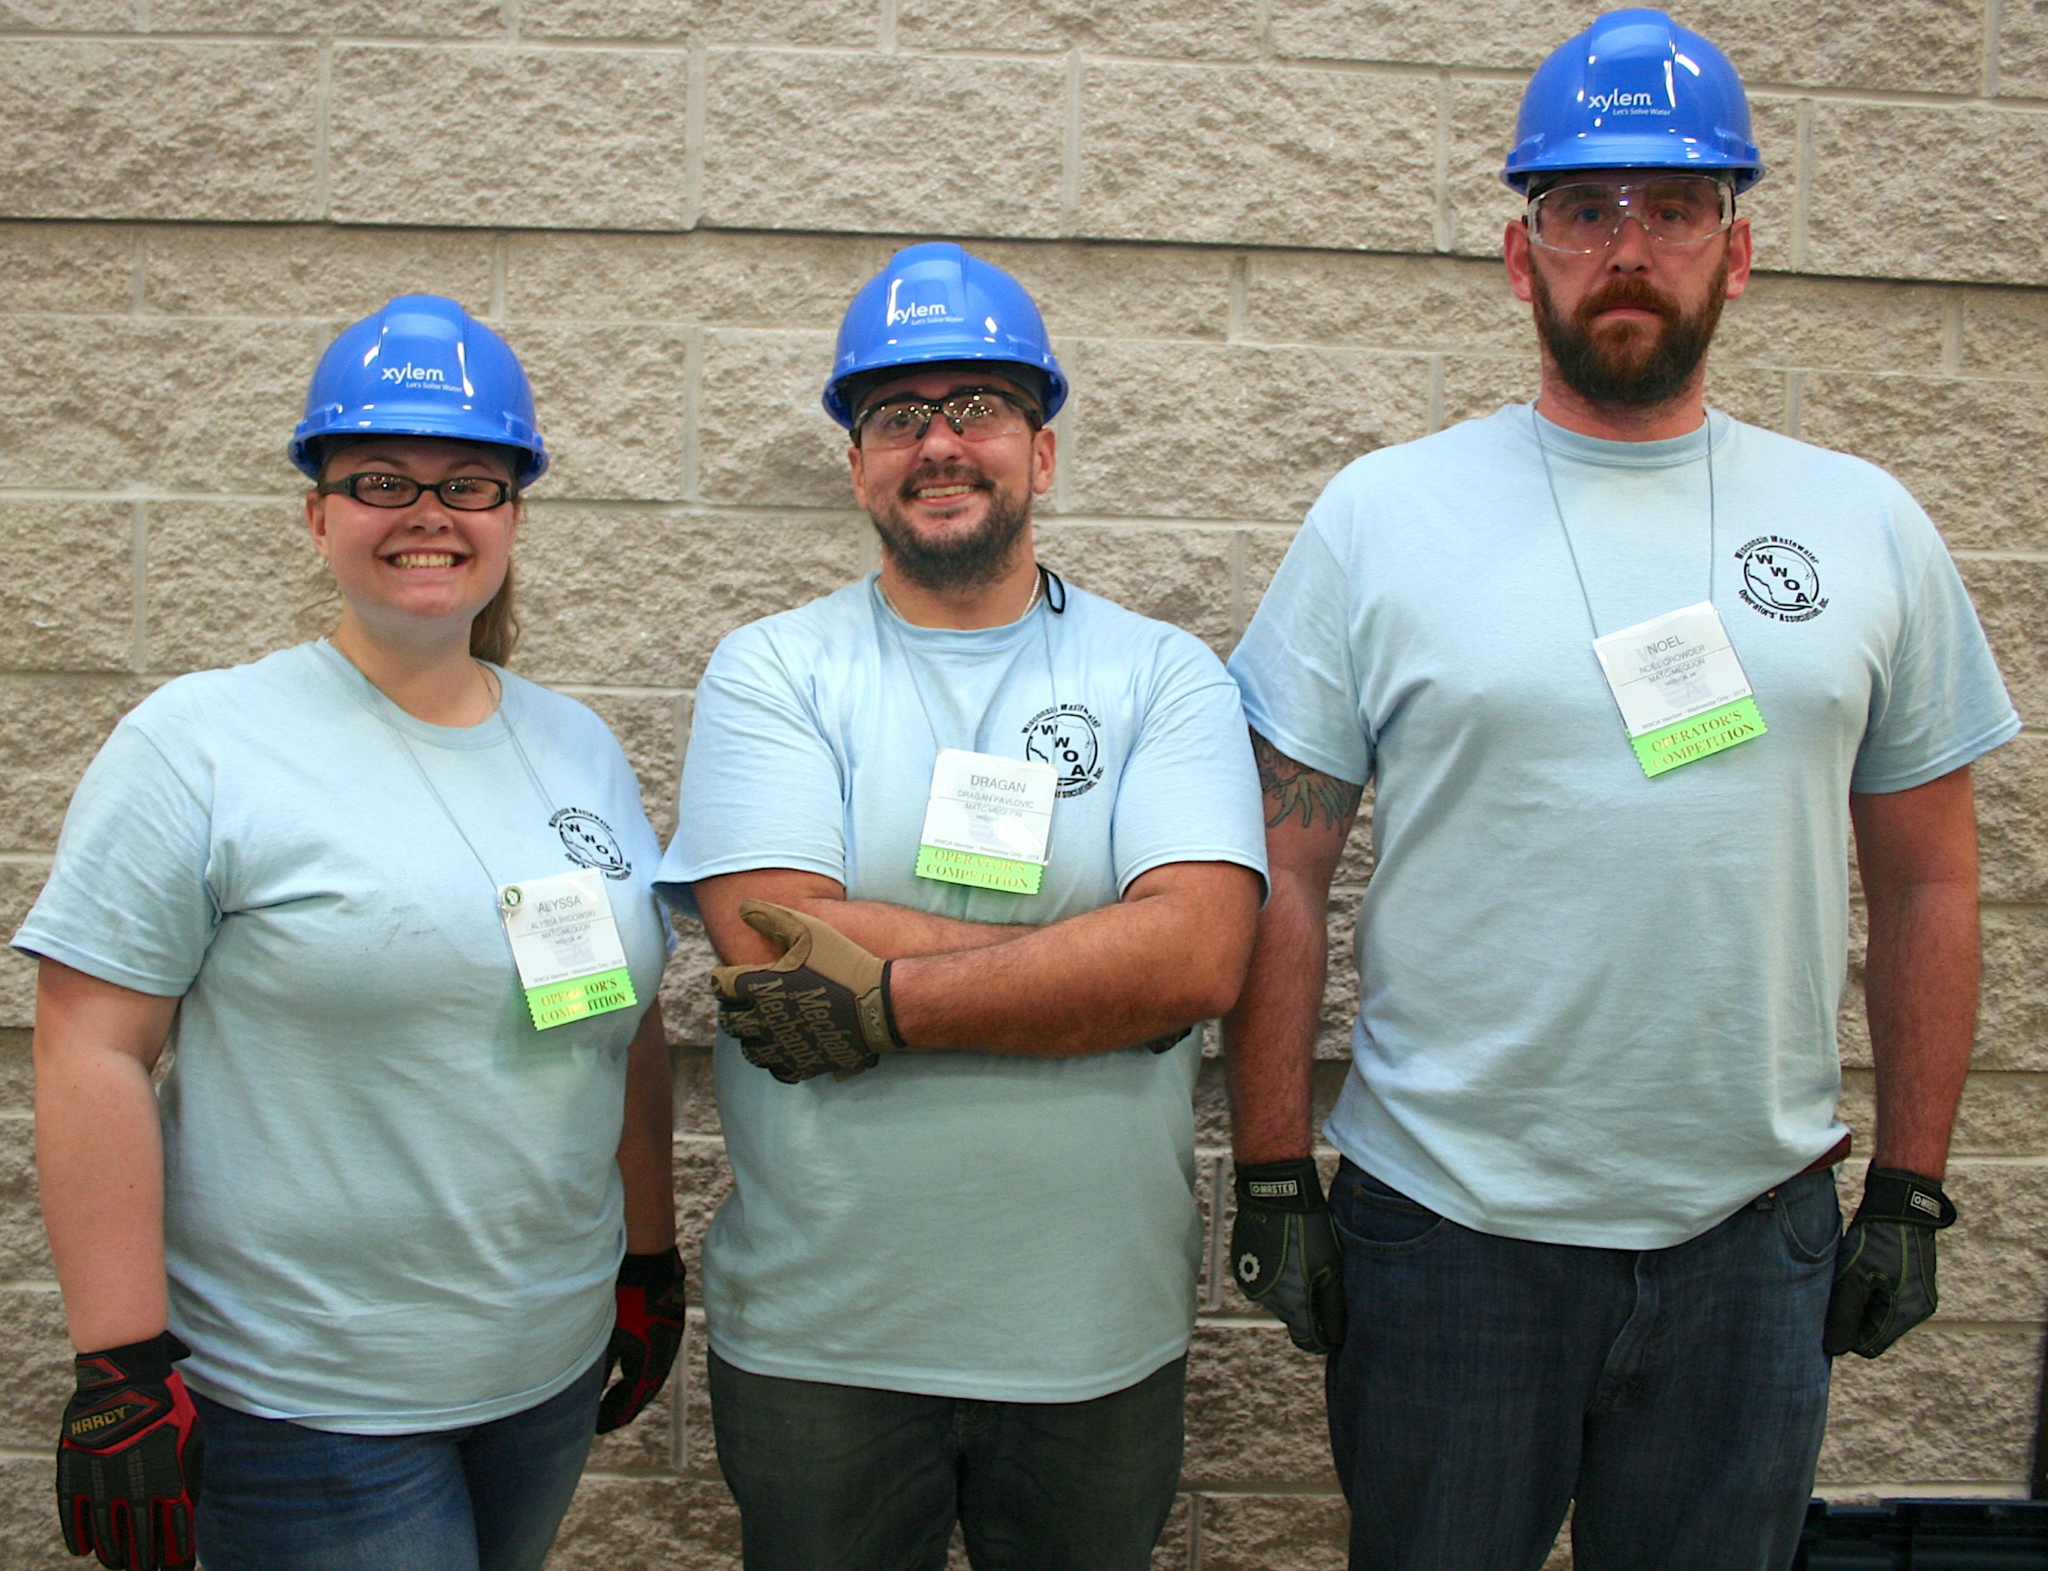 MATC's team included, from left, Alyssa Widowski, Dragan Pavlovic and Noel Crowder.